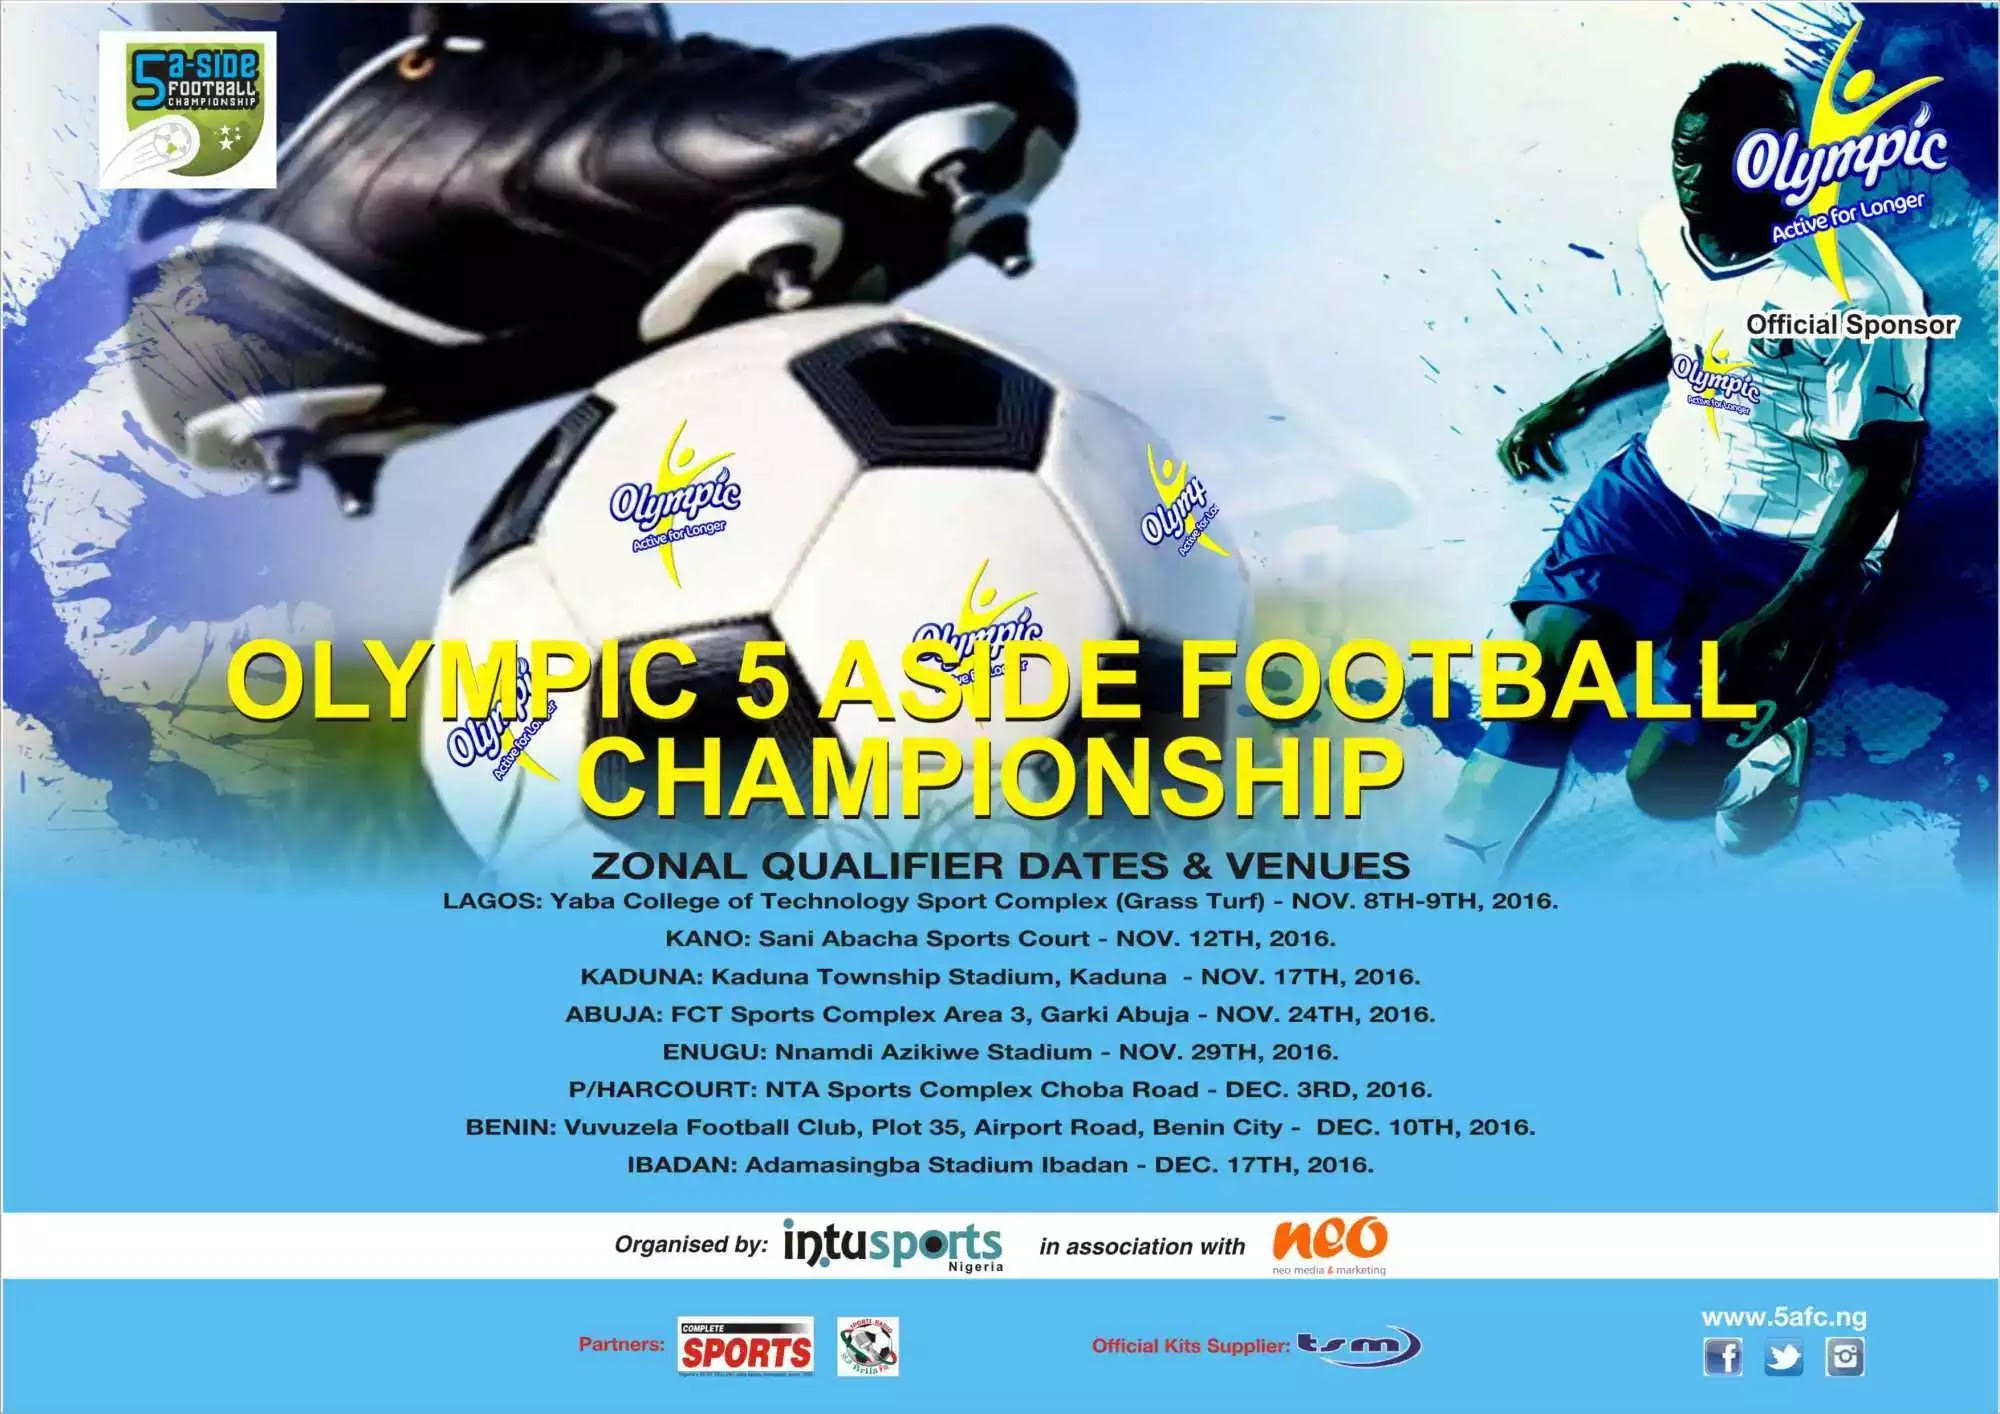 Olympic 5-A-Side Season 2: Benin Zonal Qualifiers Start Dec. 10